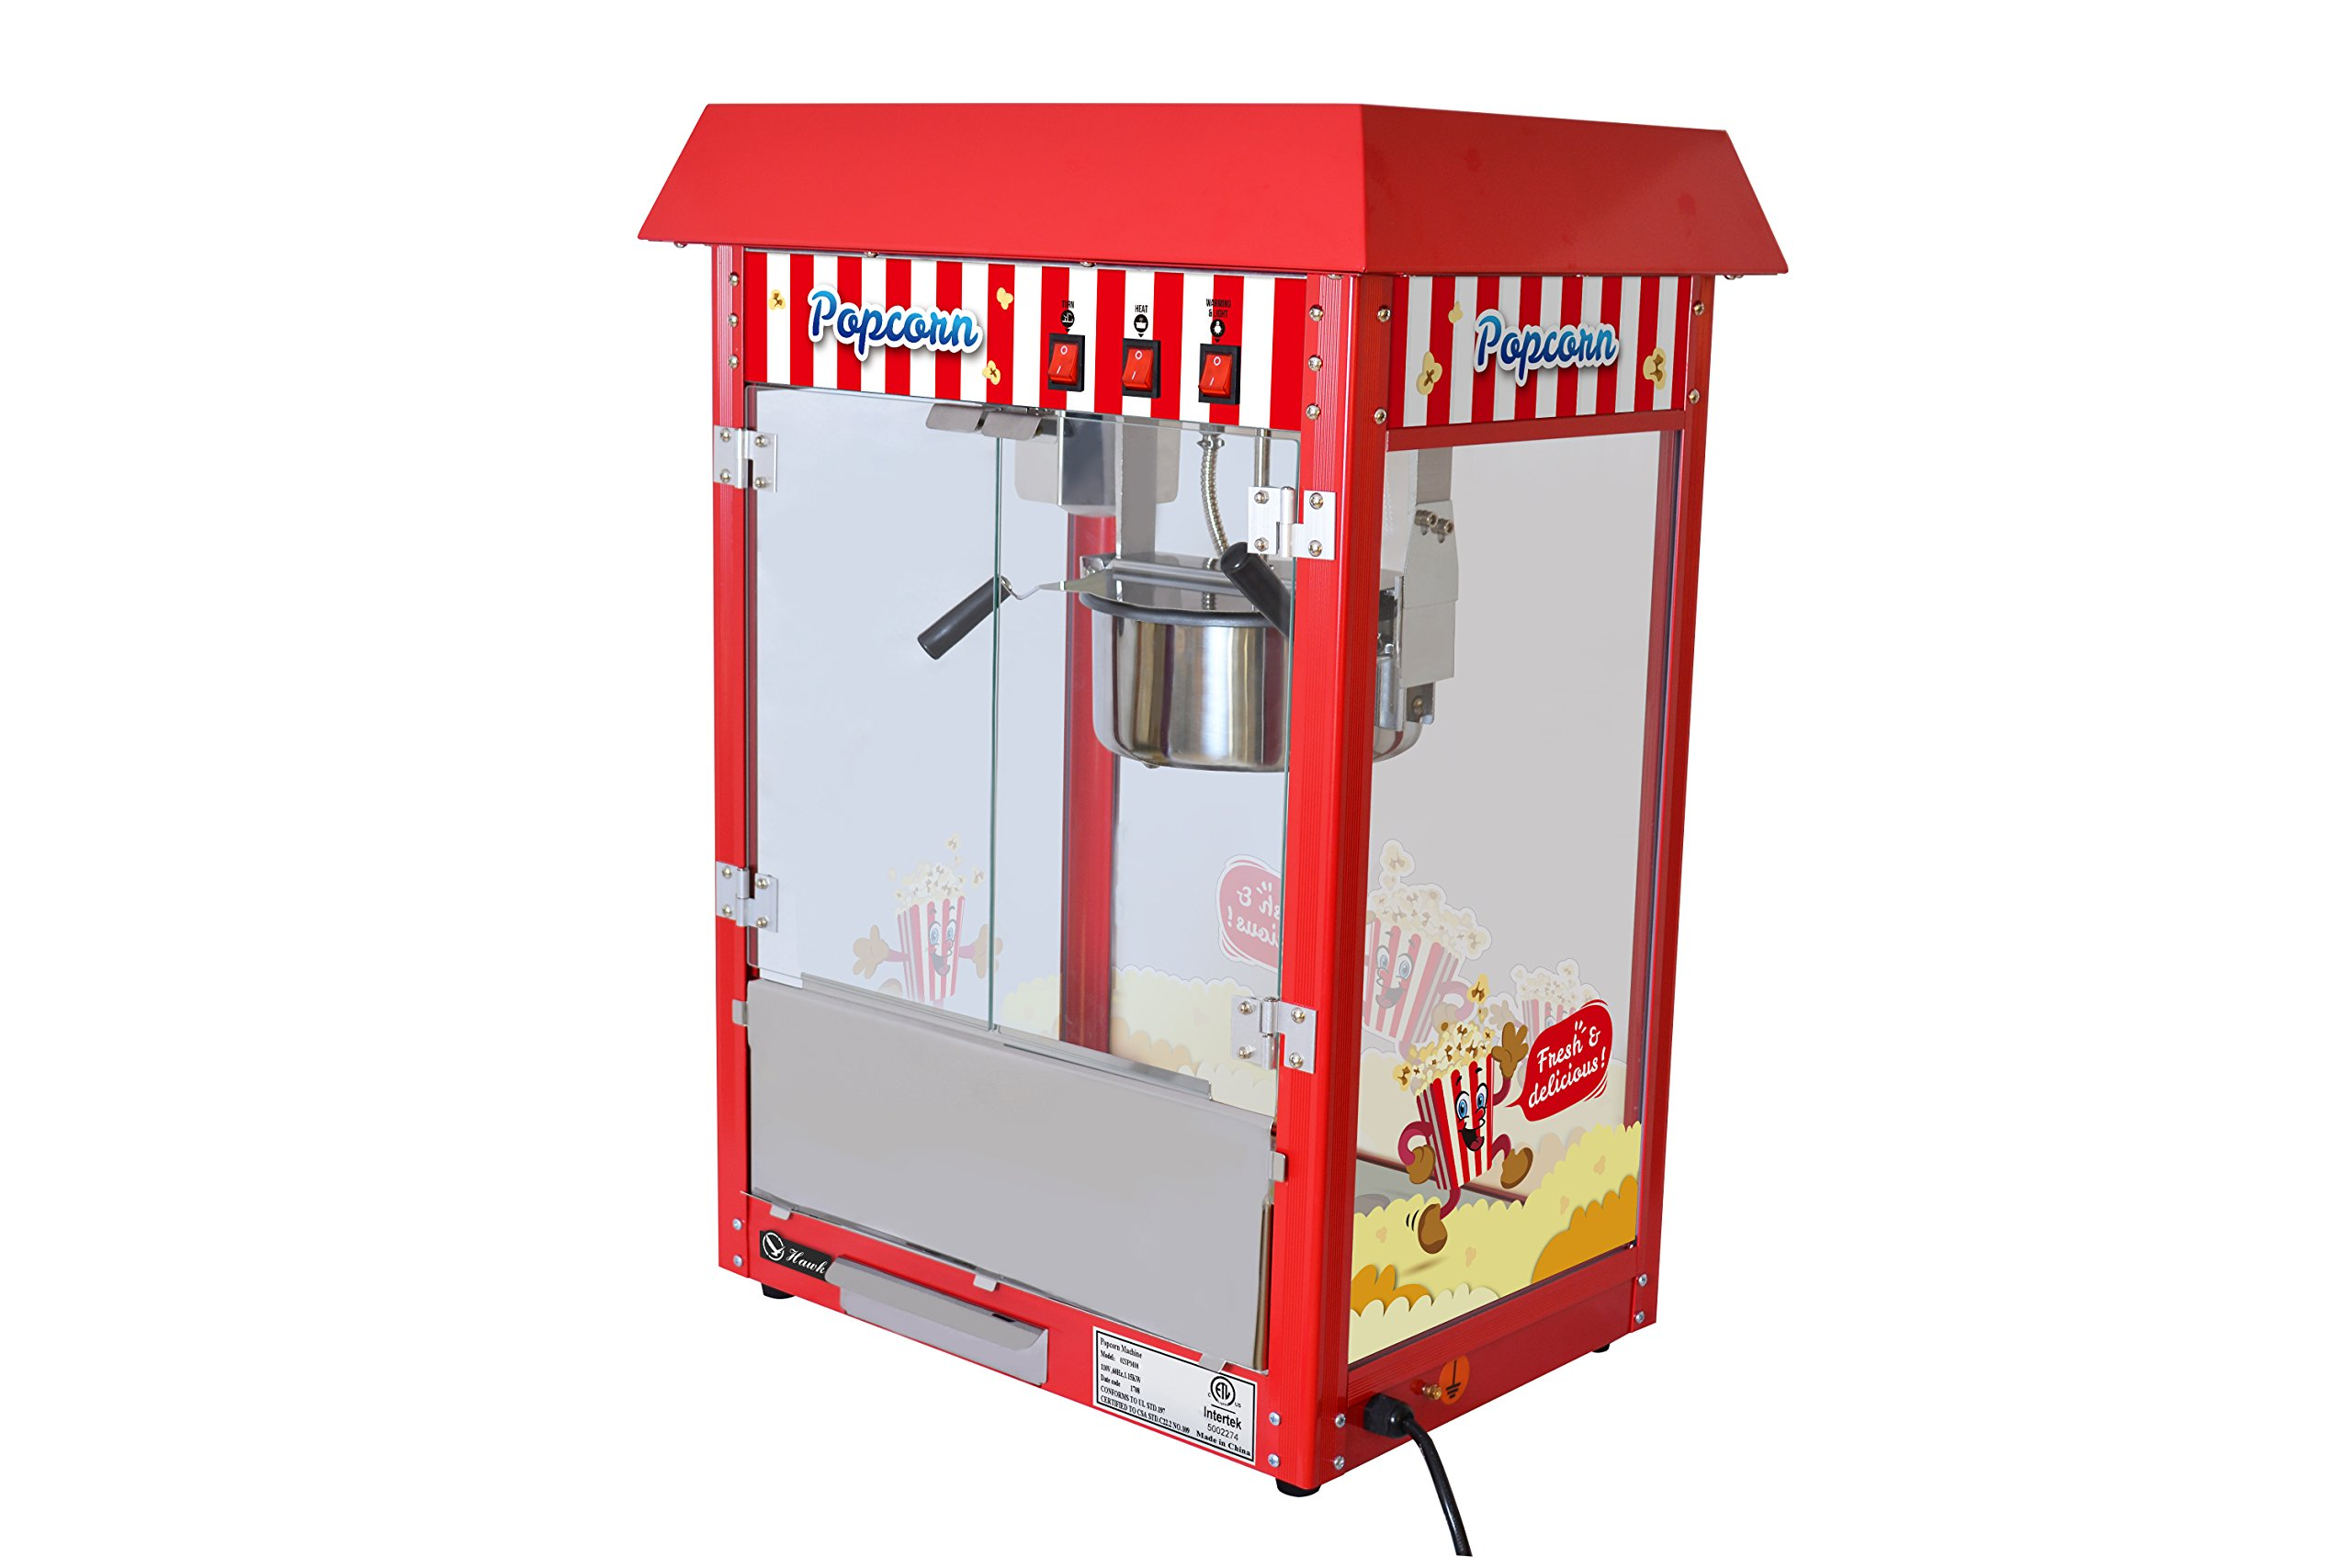 Movie Theater Style 8 oz. Ounce Popcorn Machine. Quick popcorn within 3 min (Red Top)